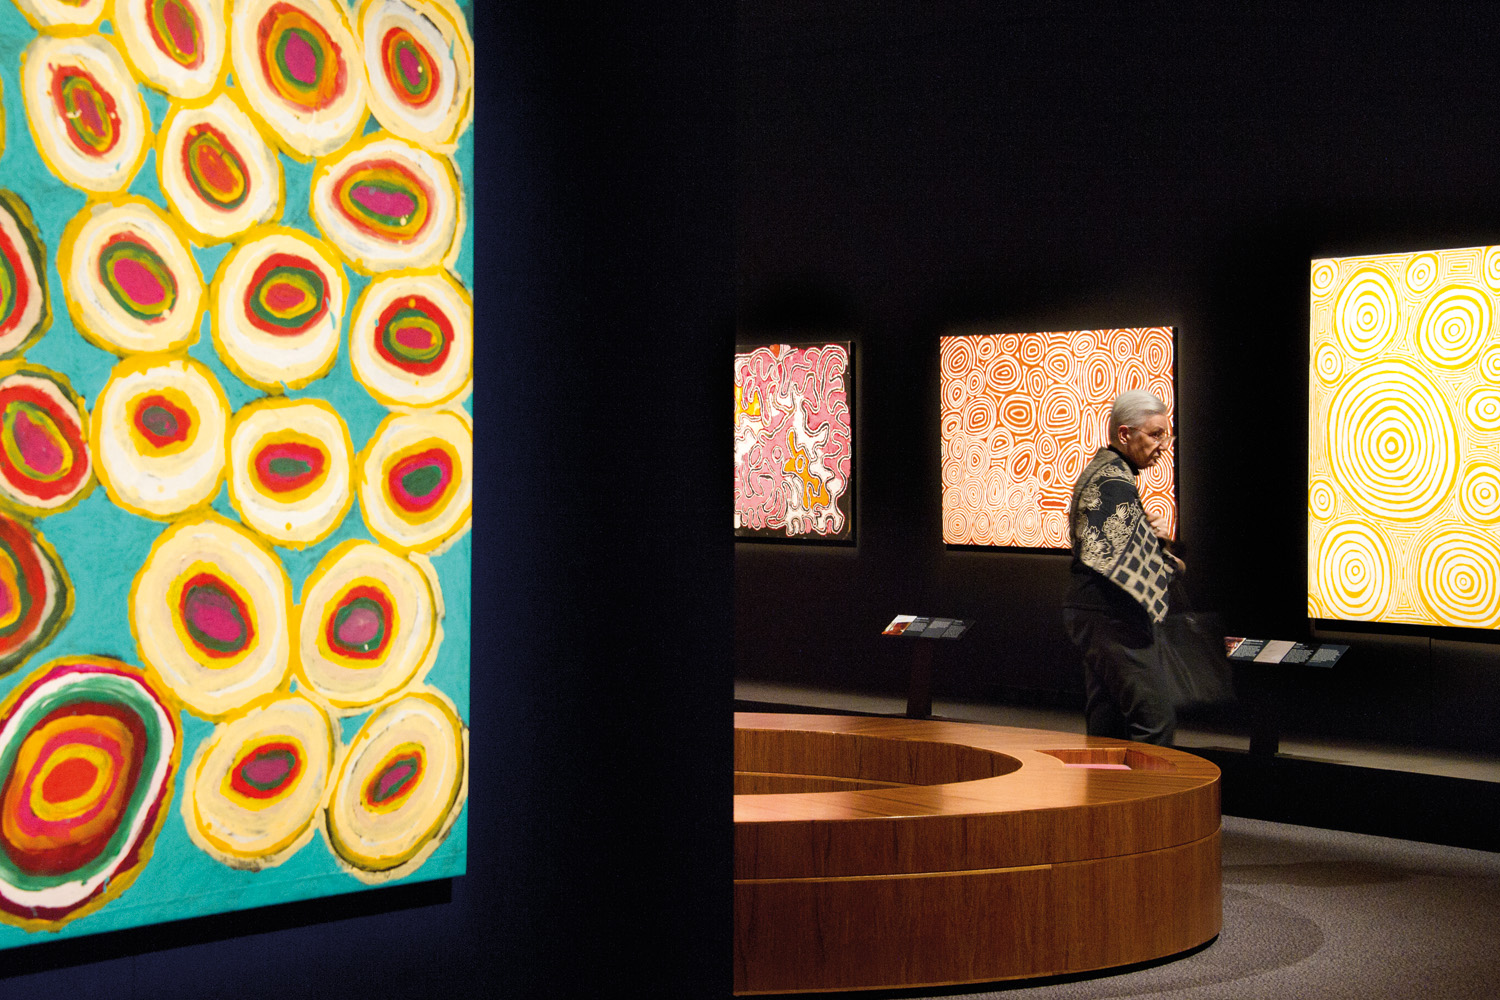 he works of senior and emerging artists were utilised alongside the stories of traditional custodians, allowing the visitor to become immersed in these cultural and historical perspectives.